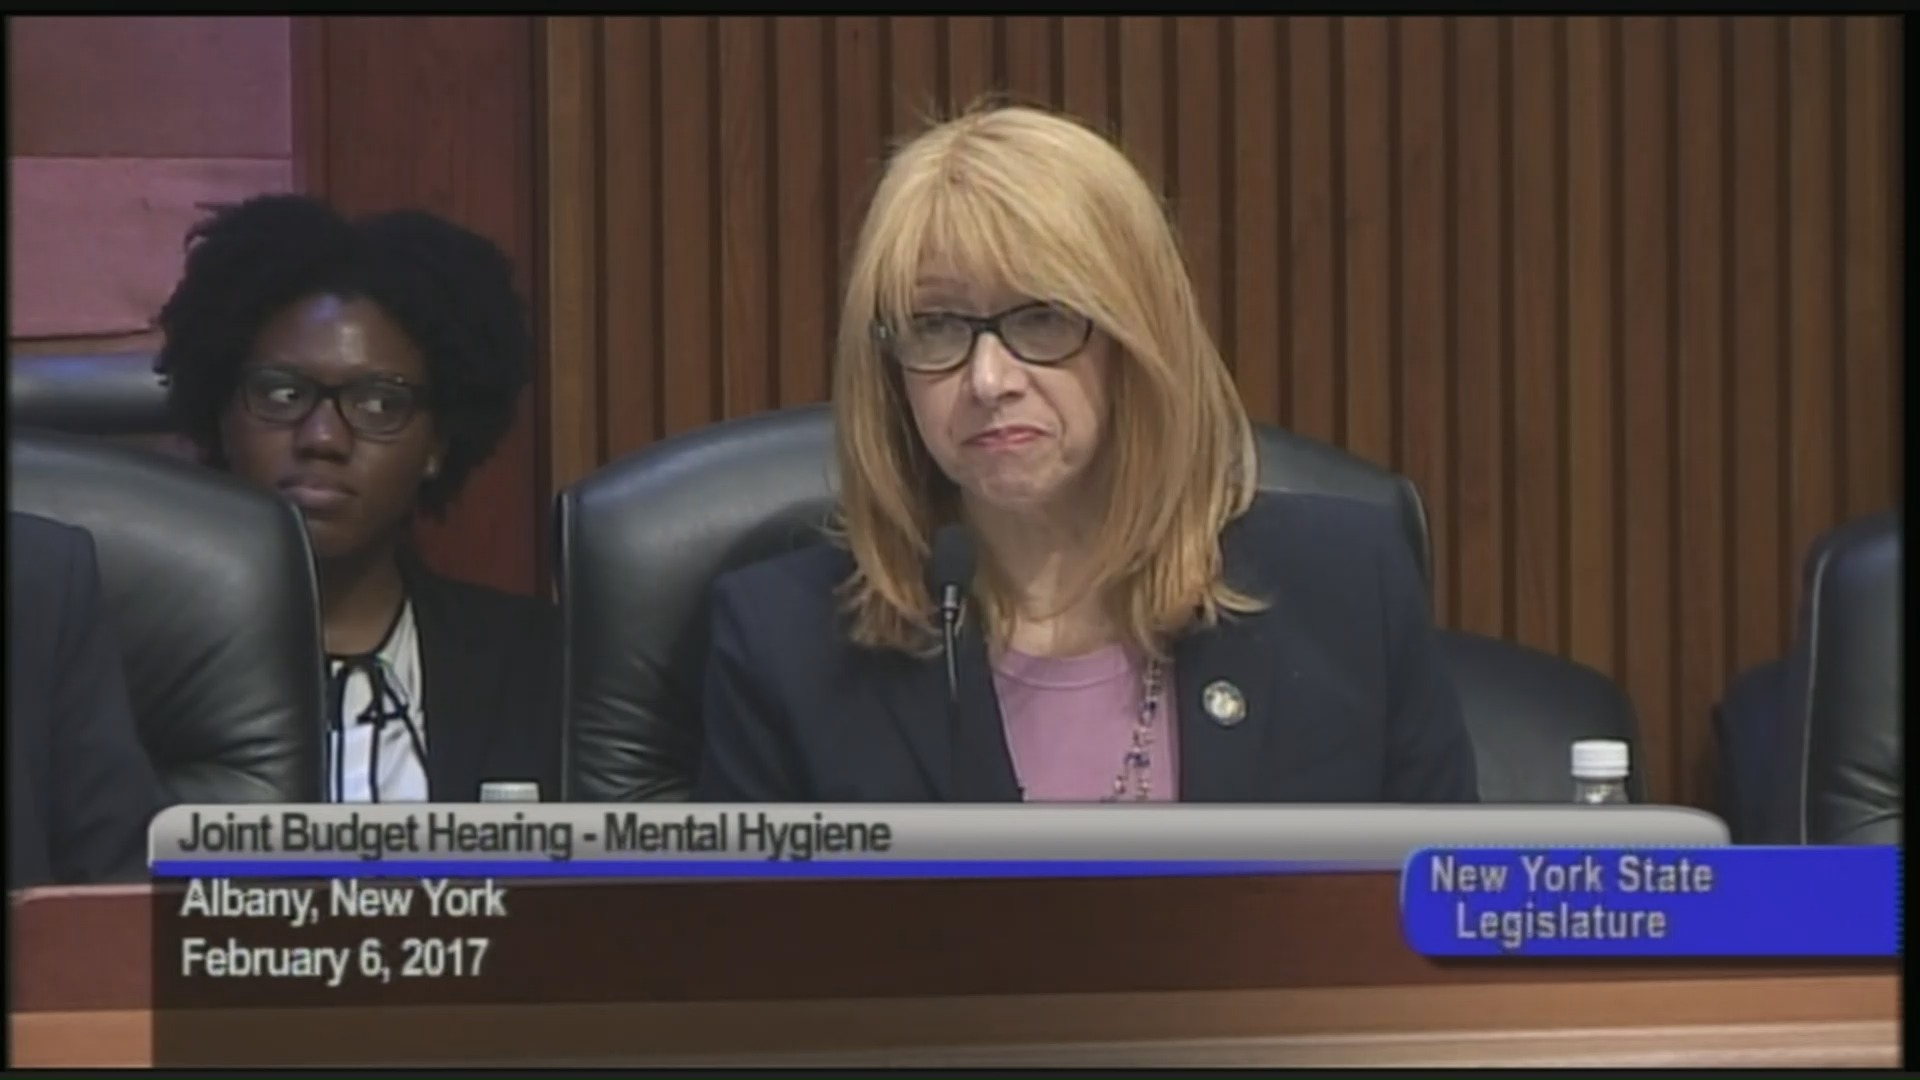 Budget Hearing on Mental Hygiene